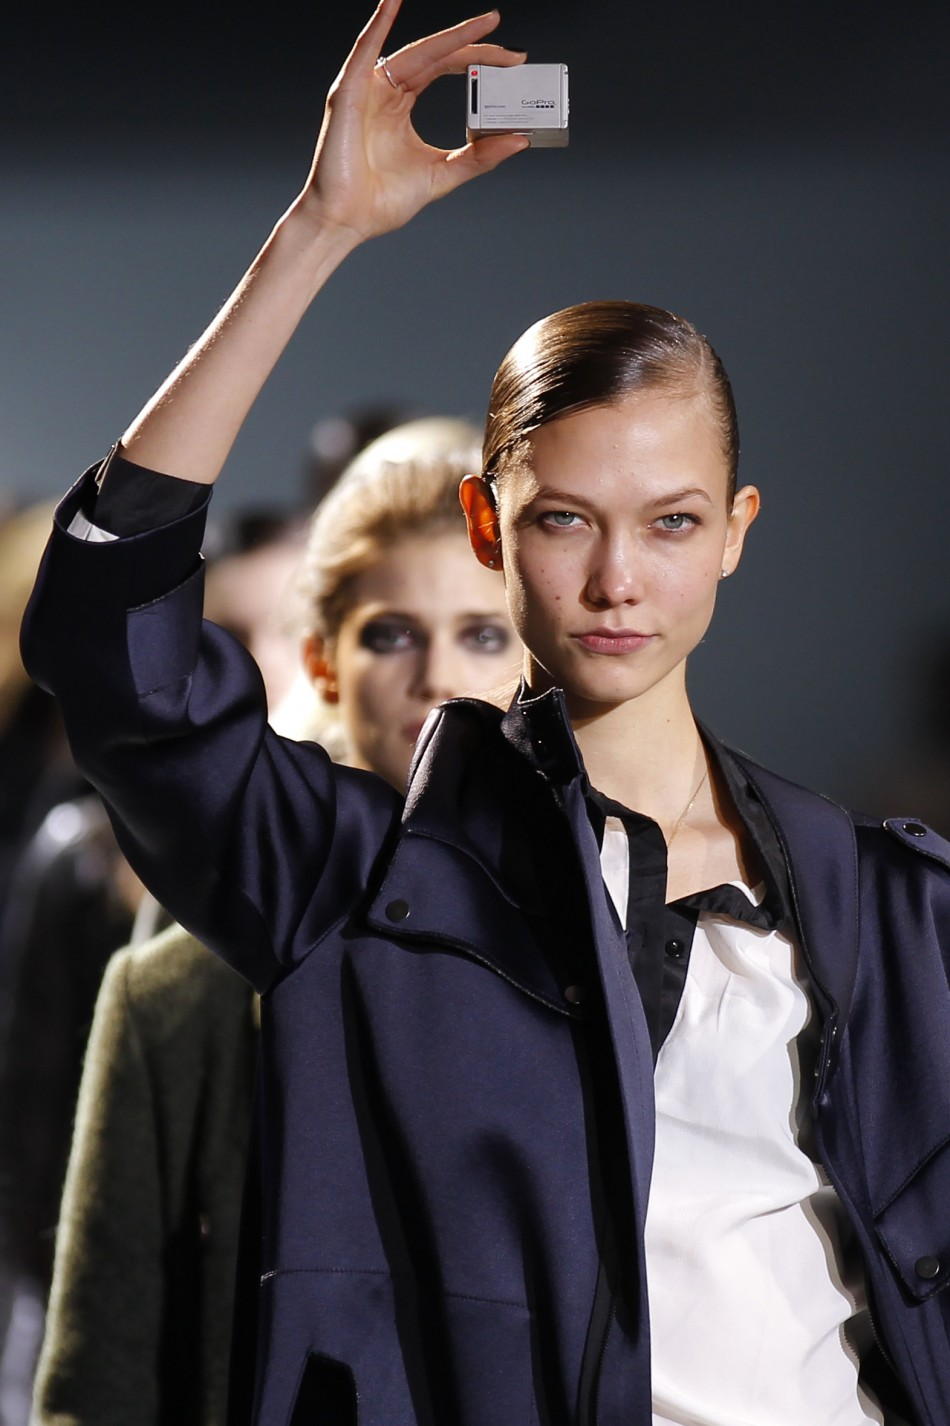 Top Models Karlie Kloss, Anja Rubik Kick-starts 2012 Paris Fashion Week